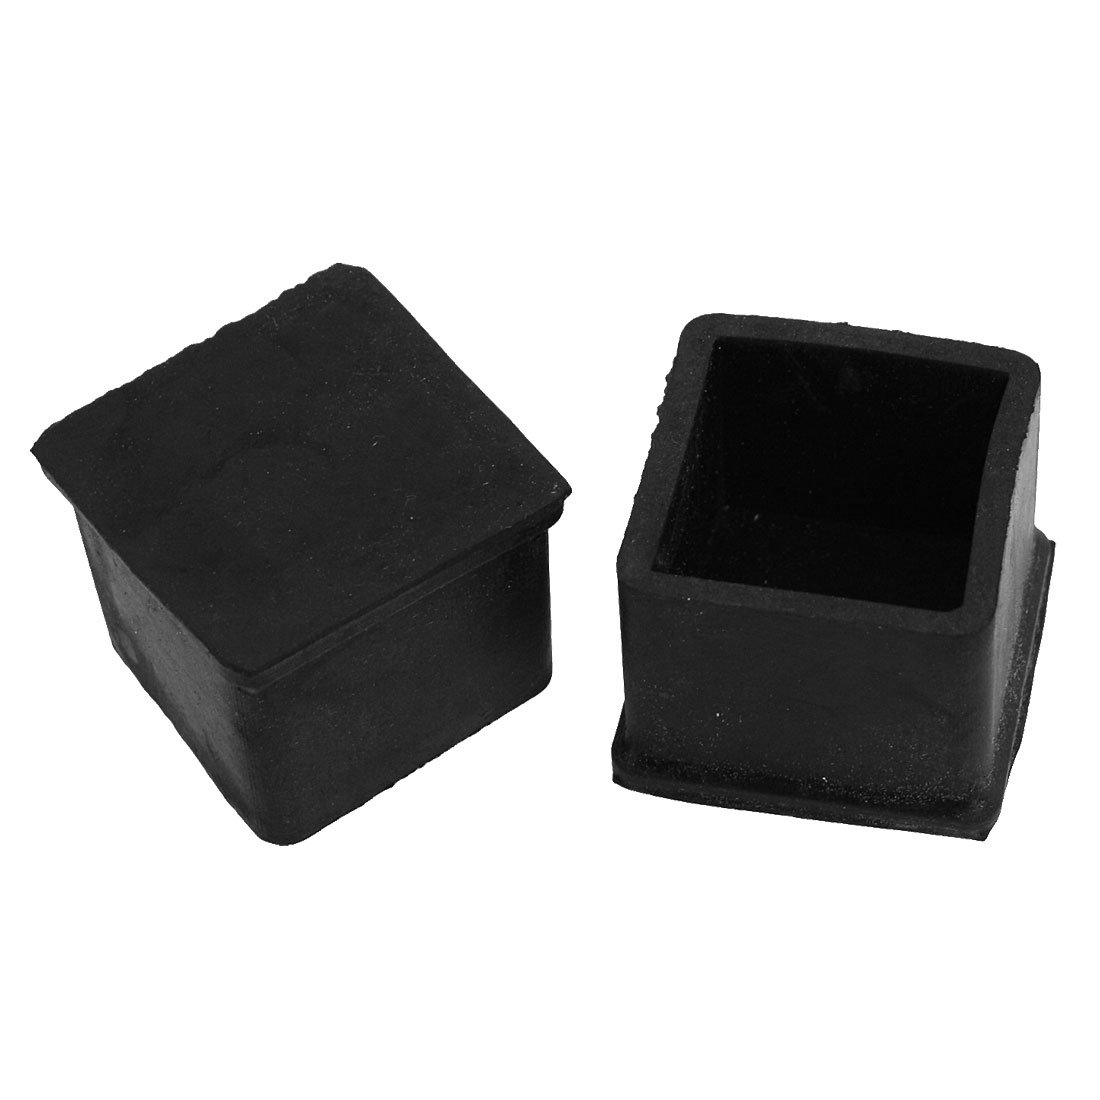 10xchair table leg foot rubber covers floor protector cap square black amazon co uk kitchen home